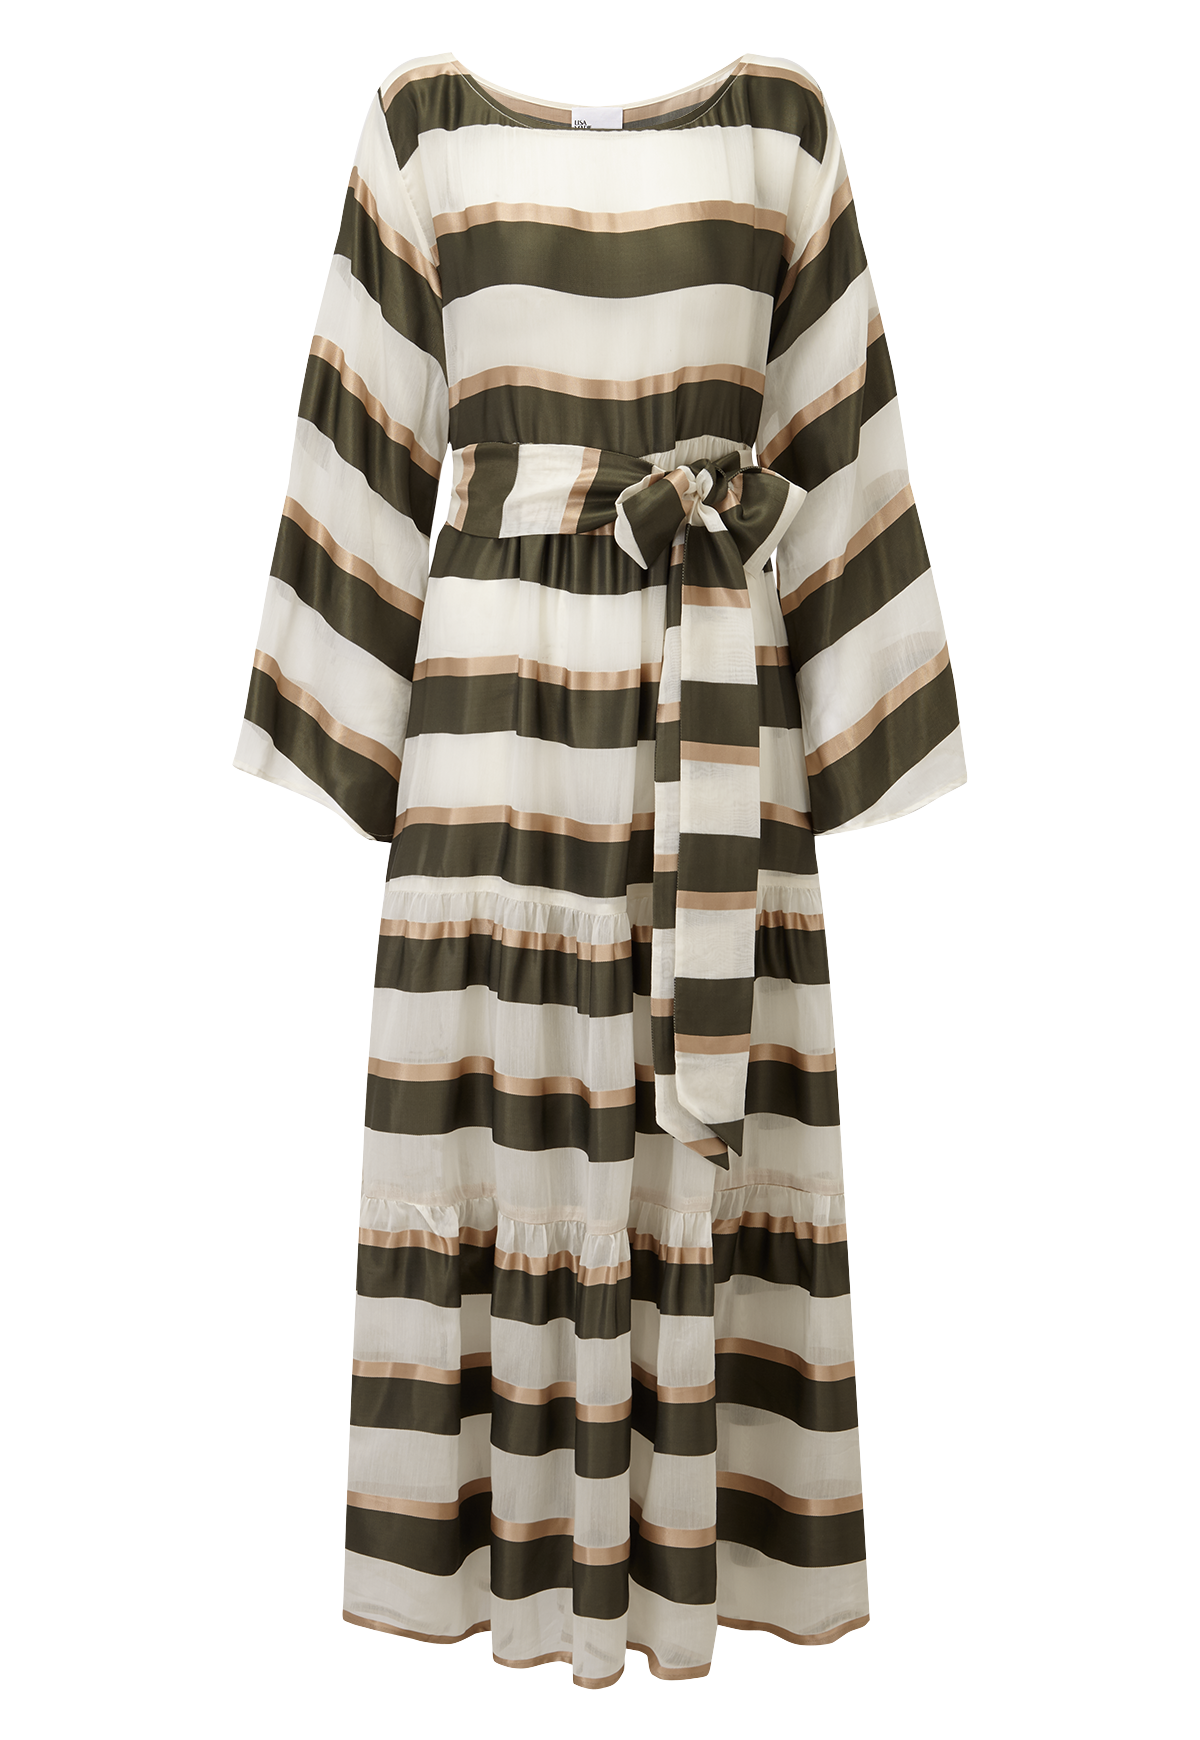 OLIVE/GOLD STRIPED BOATNECK PEASANT DRESS